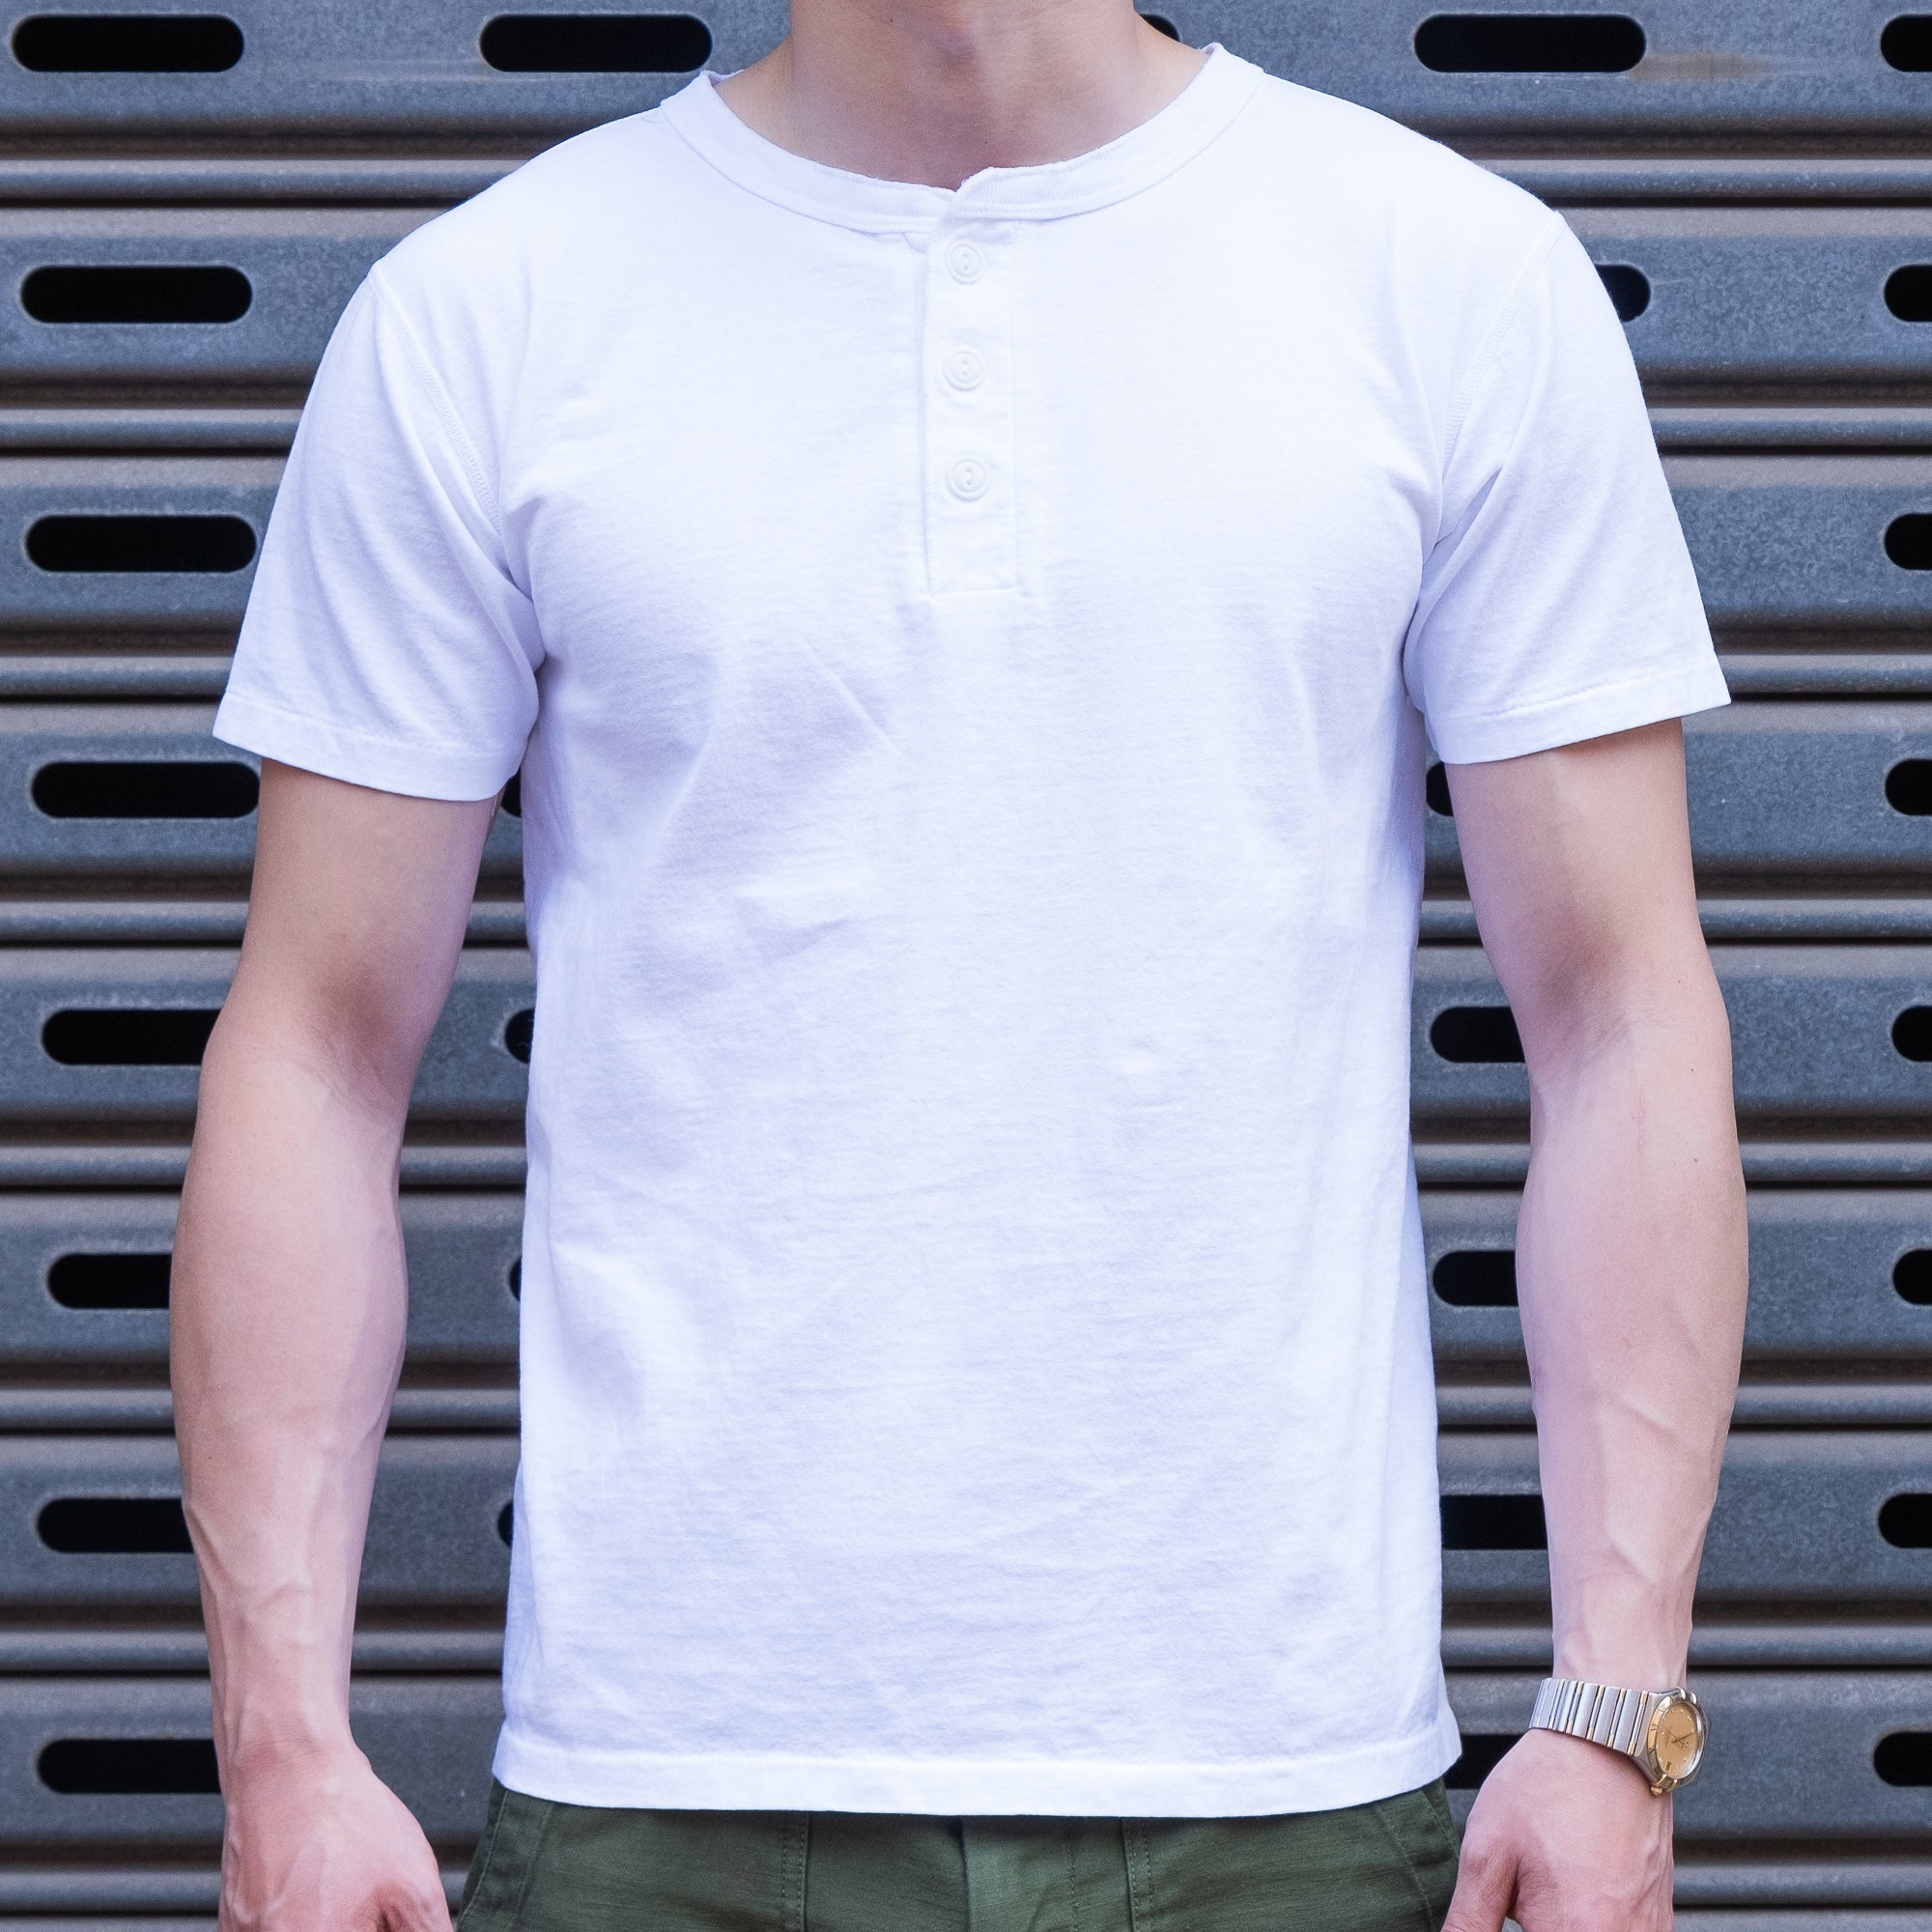 Velva Sheen - S/S Henley T-Shirt in White